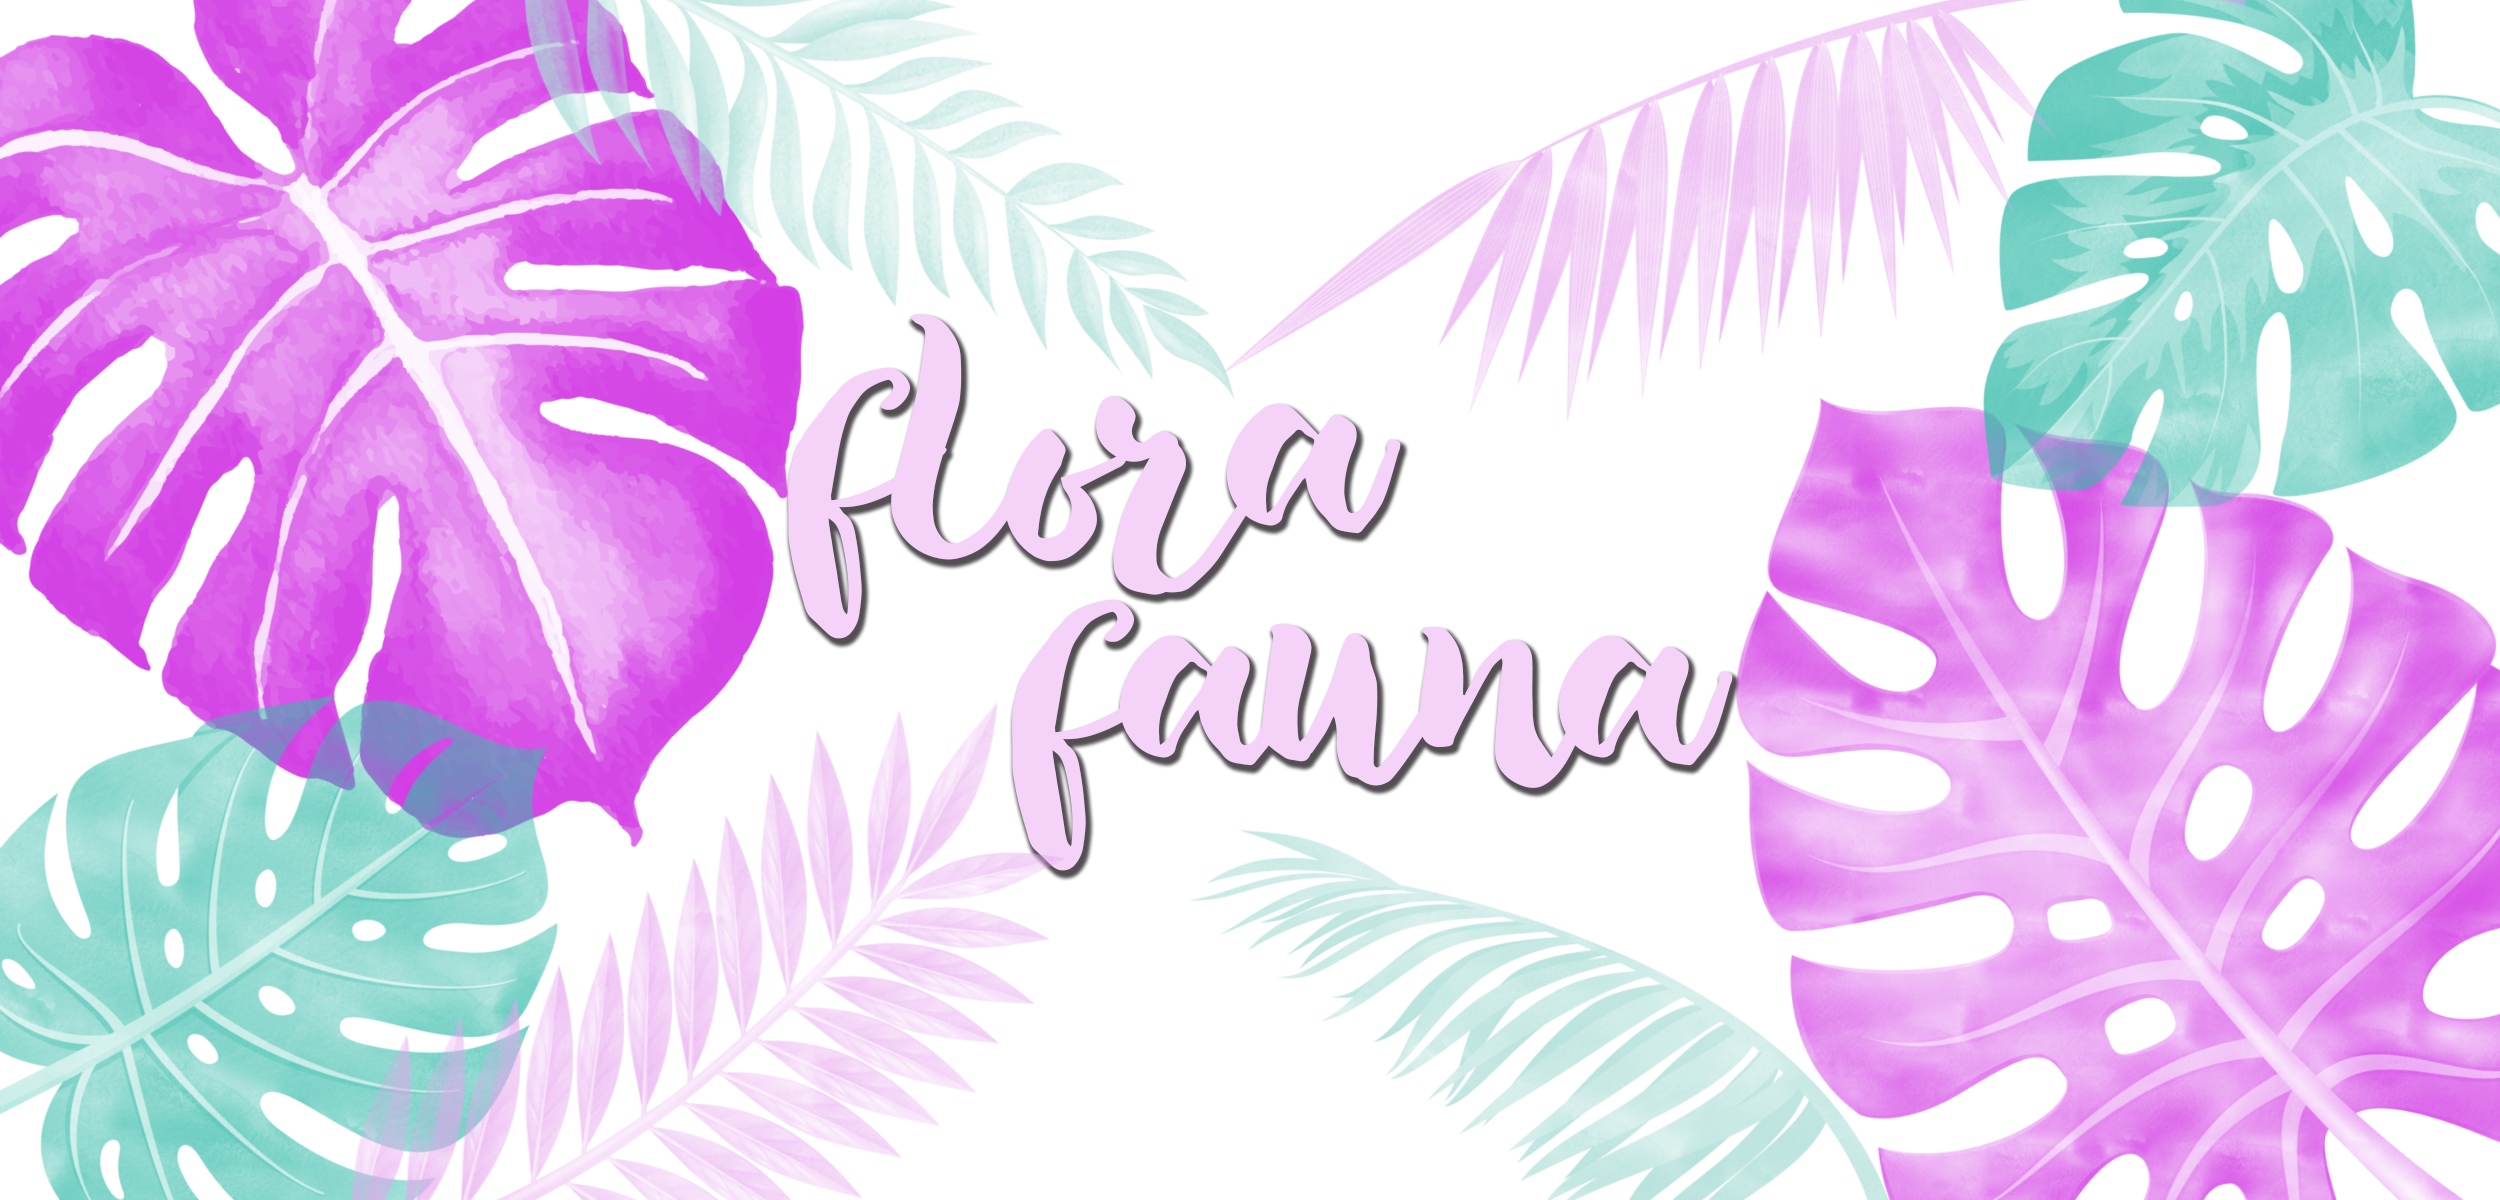 NEW INCOLLECTION VI: FLORA FAUNA -